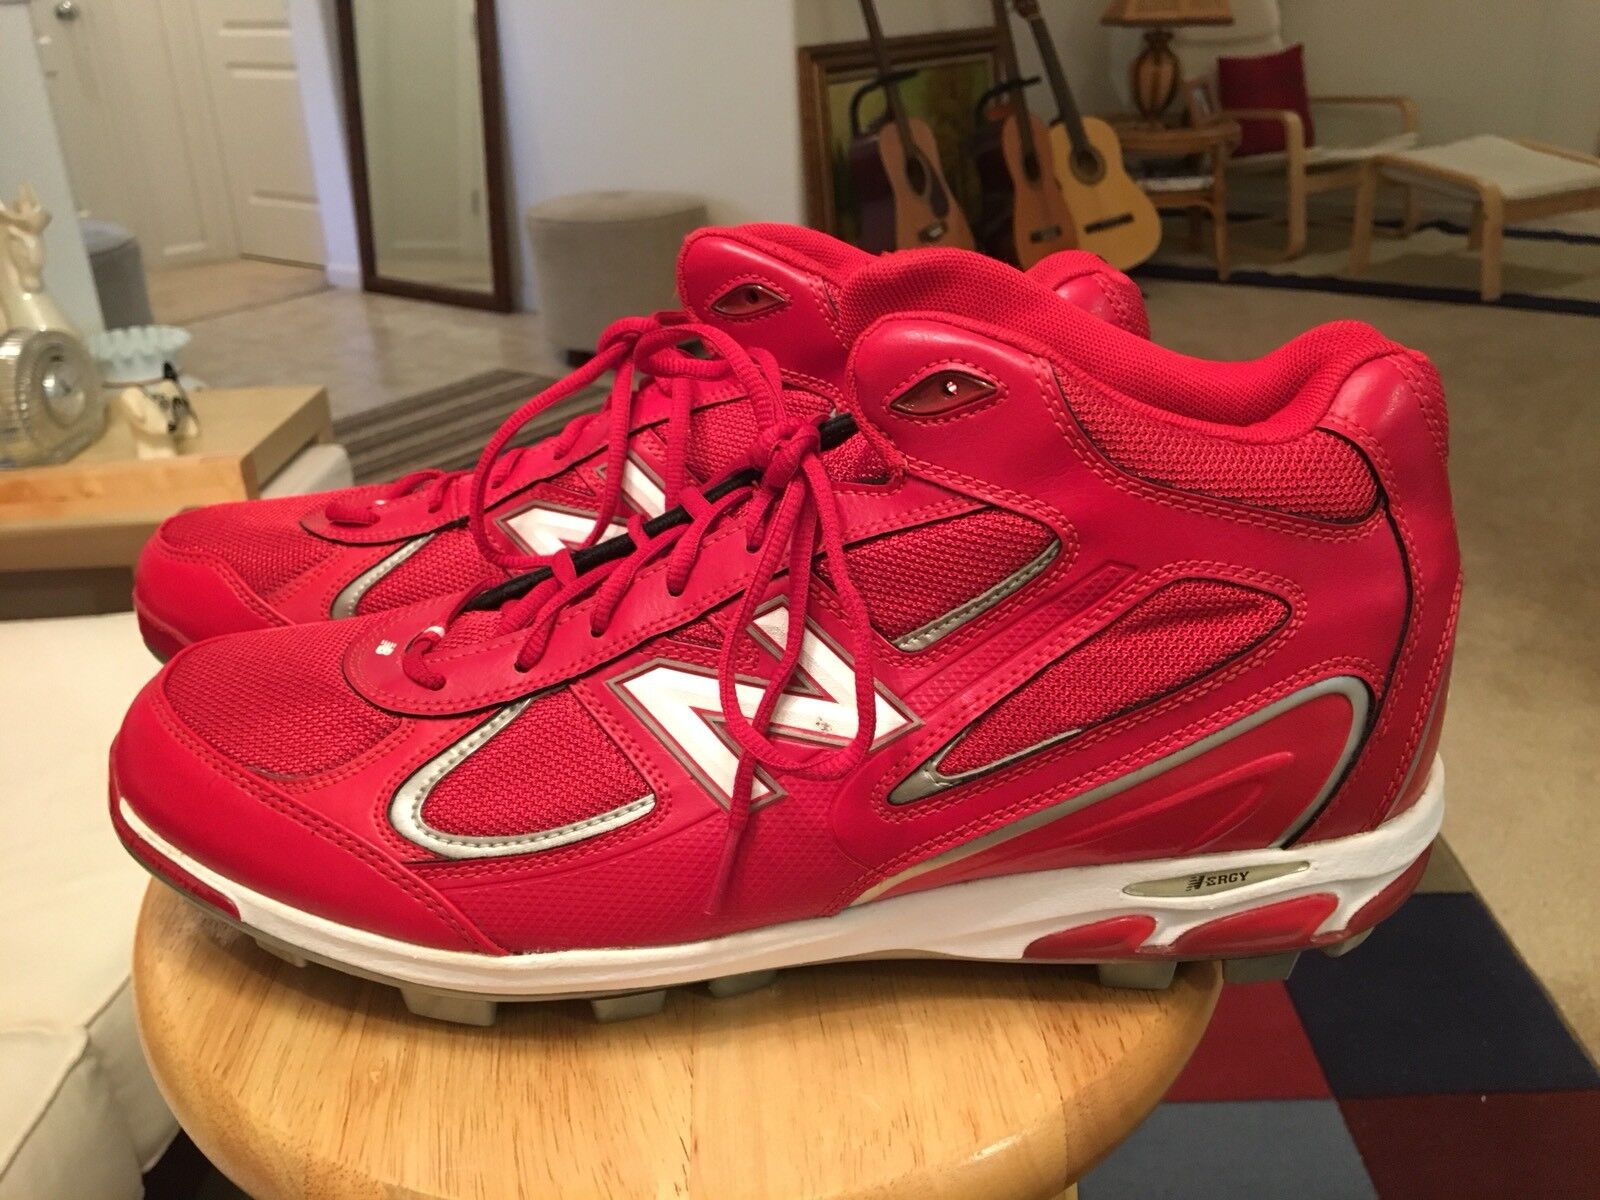 New Balance Red Men's US16.0 Baseball Cleats shoes